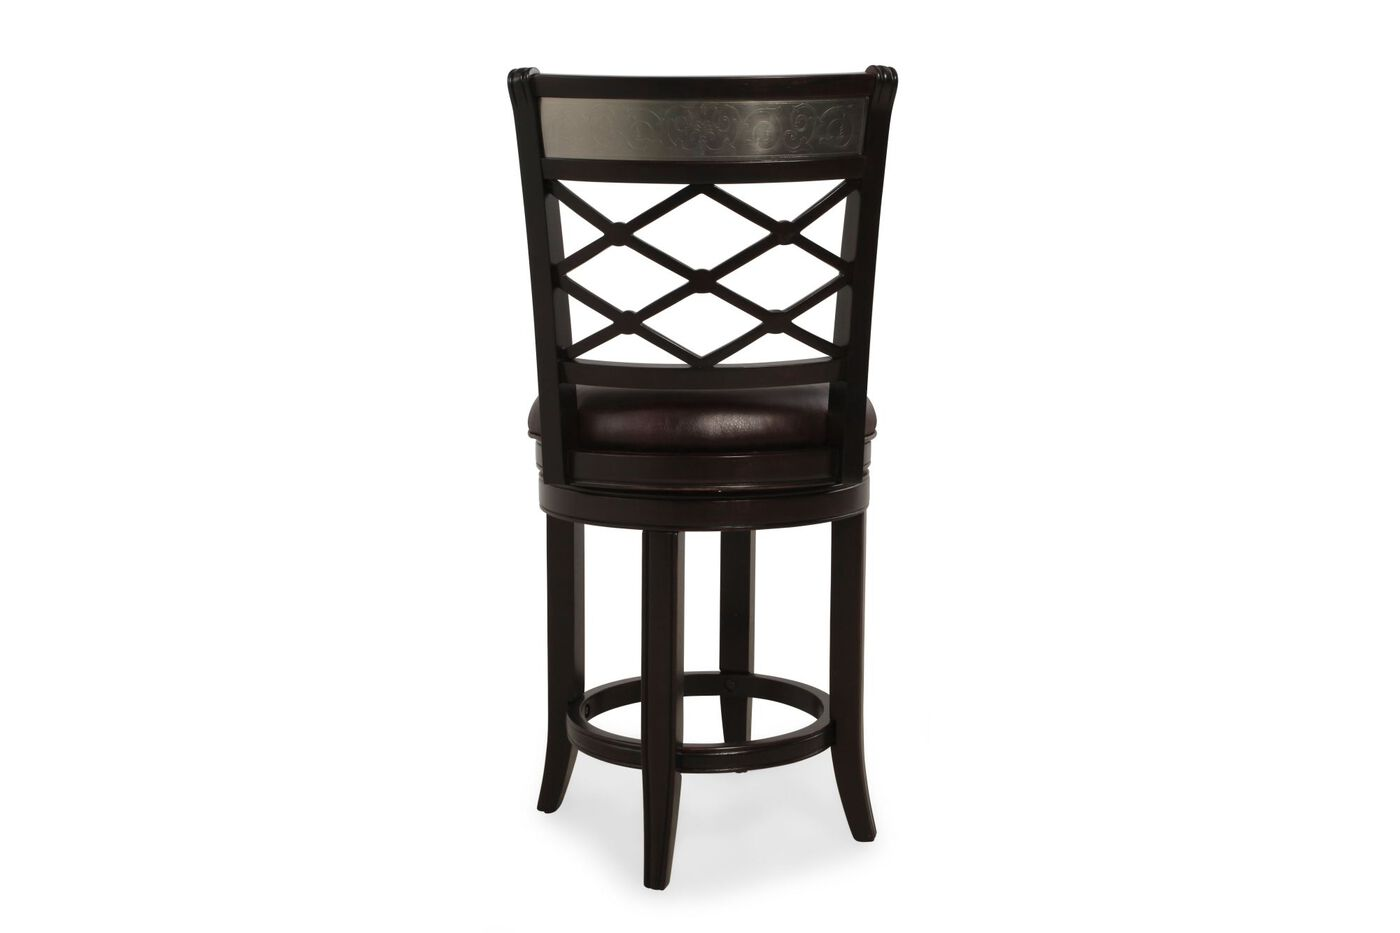 Woven Back 43 Quot Swivel Bar Stool In Espresso Mathis